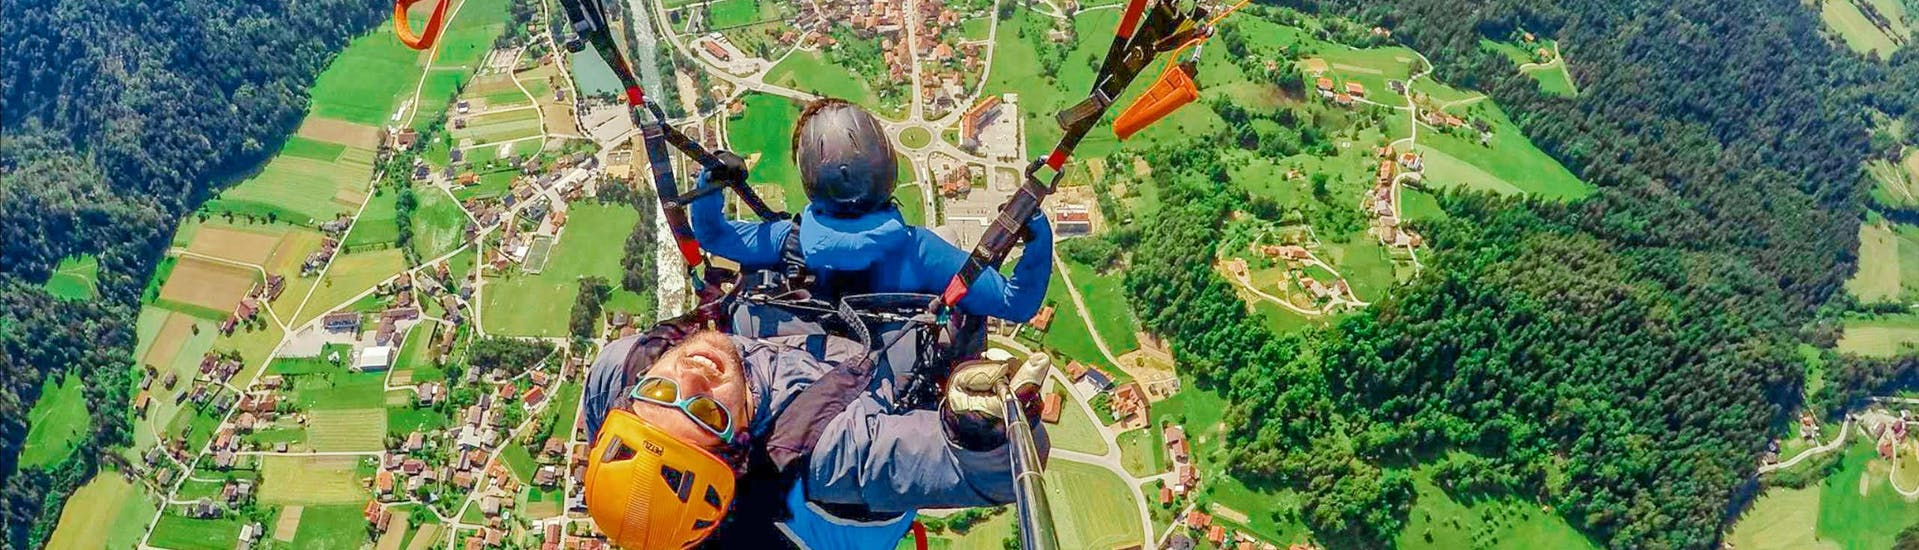 A tandem pilot from Menina Funpark and his passenger are gliding over the green landscape during the Tandem Paragliding in Upper Savinja Valley.